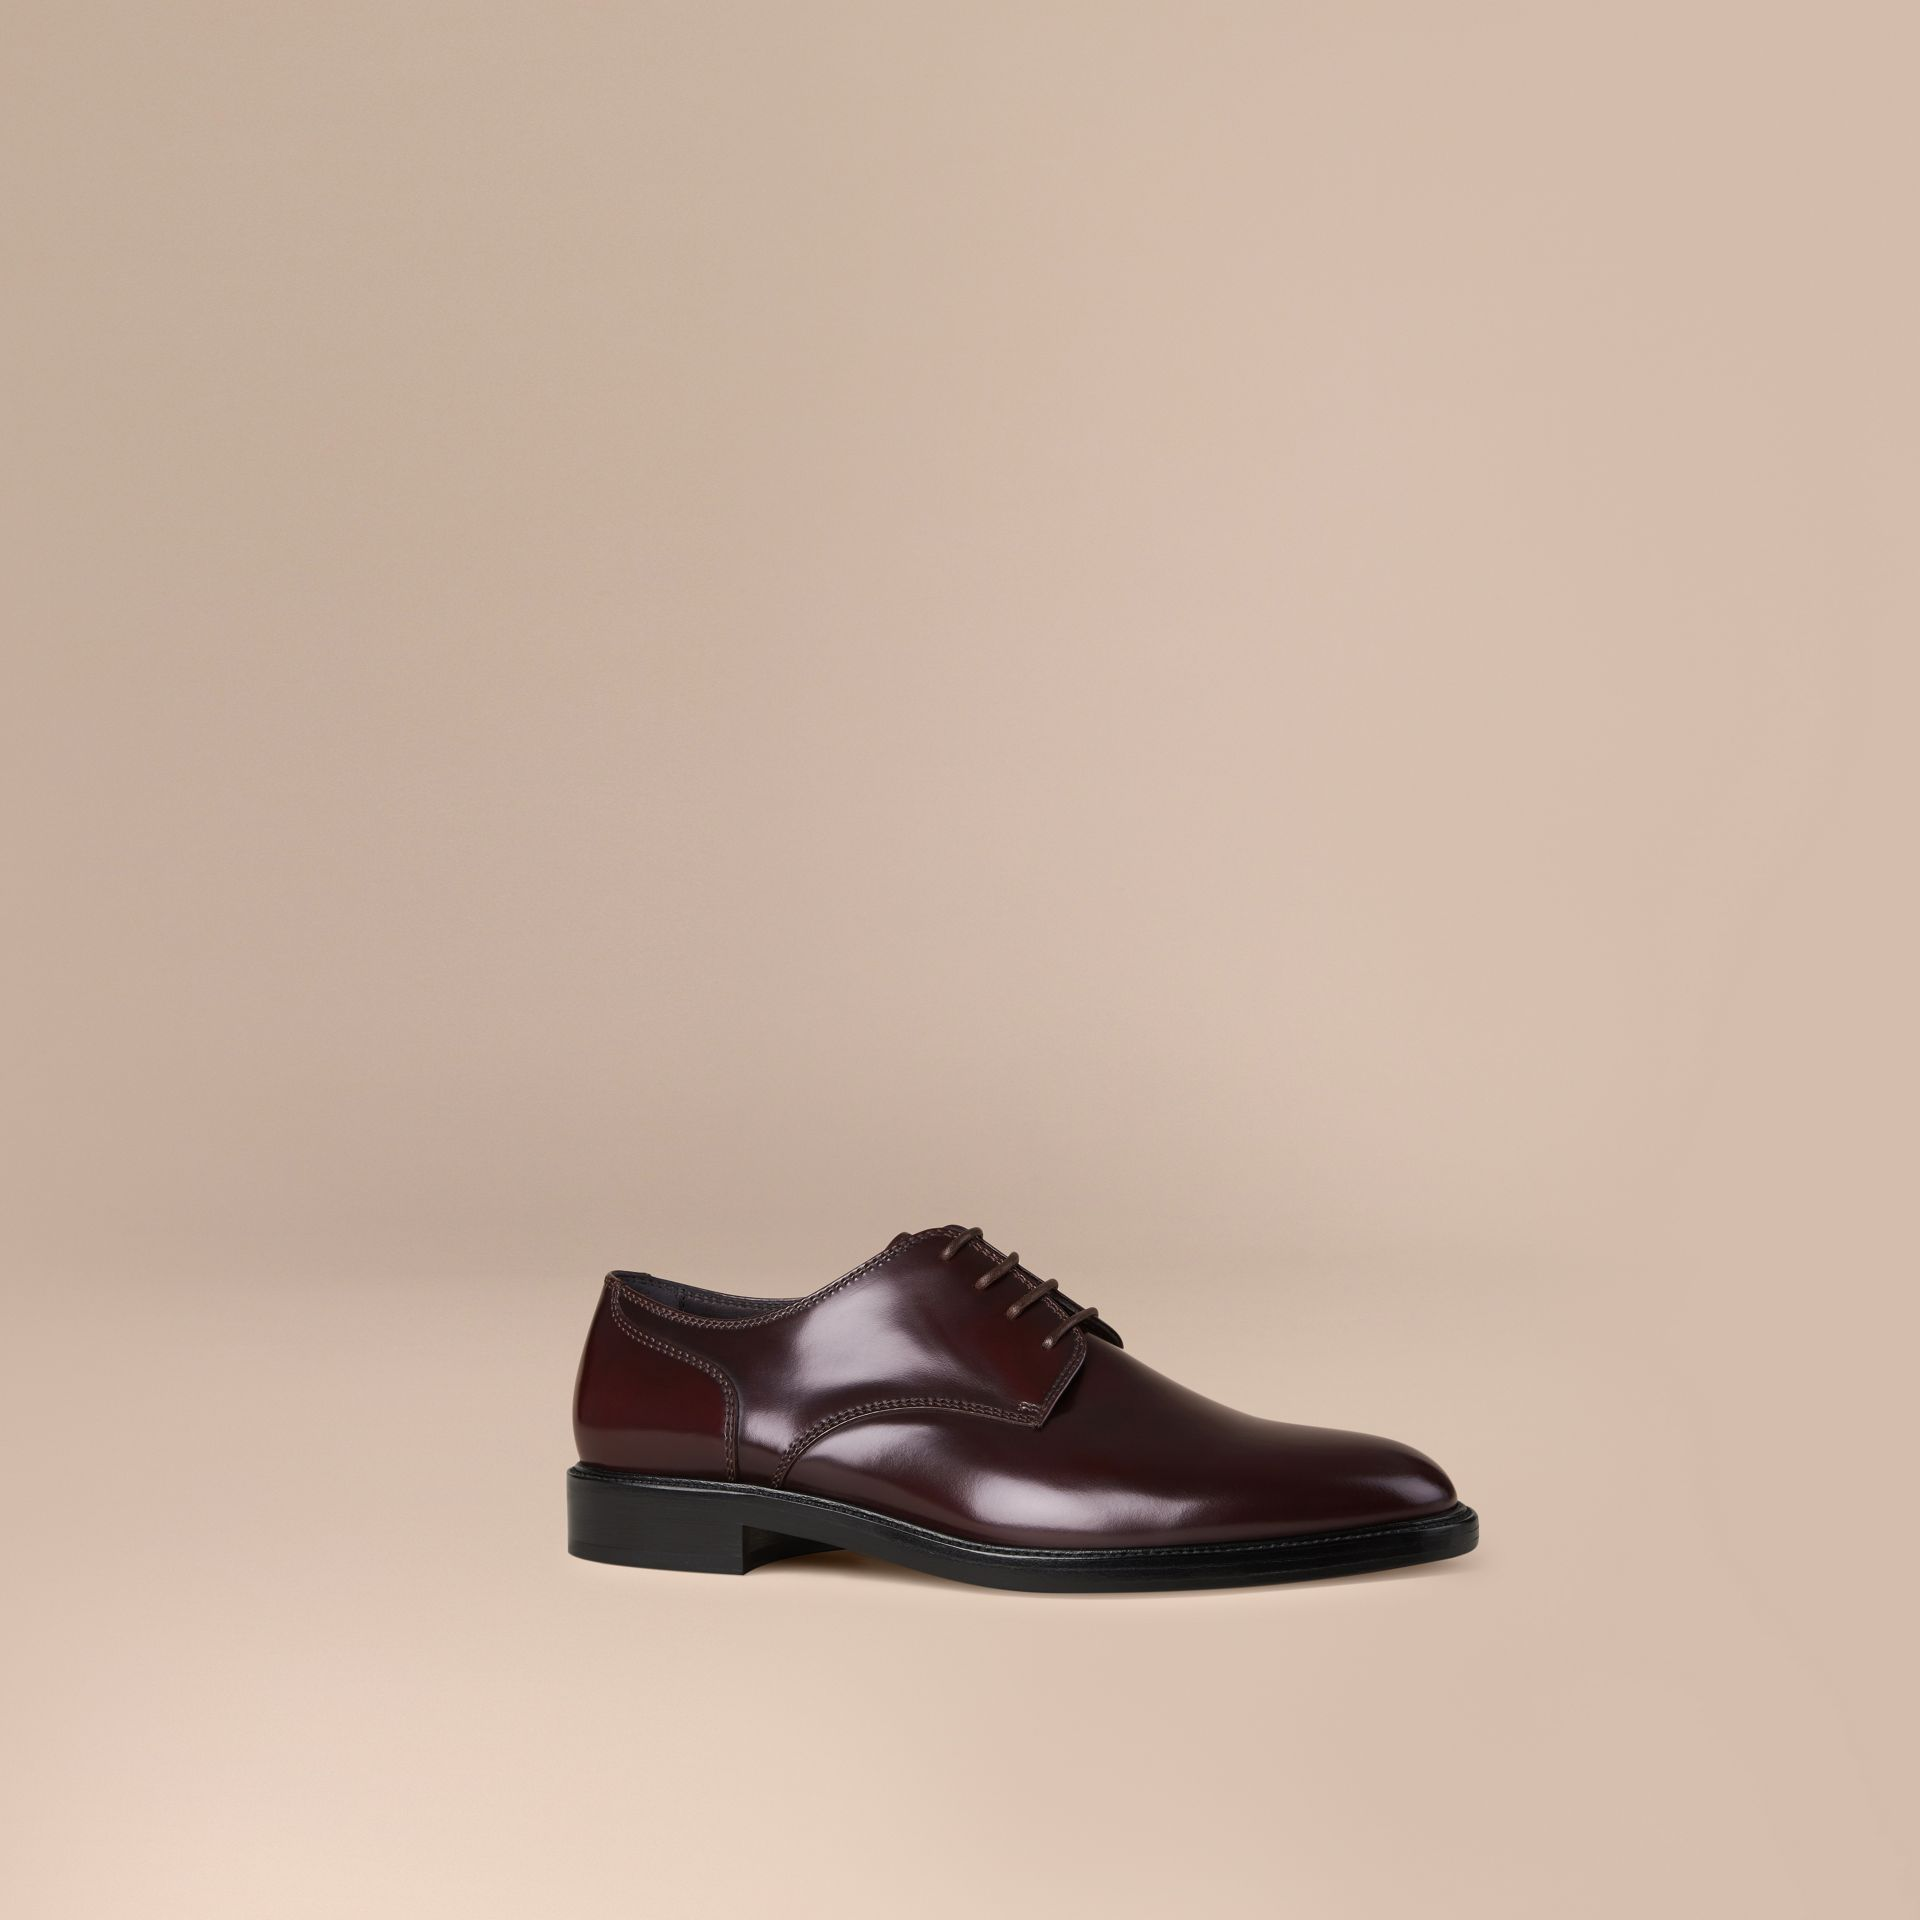 Oxblood Chaussures de style derby en cuir Oxblood - photo de la galerie 1